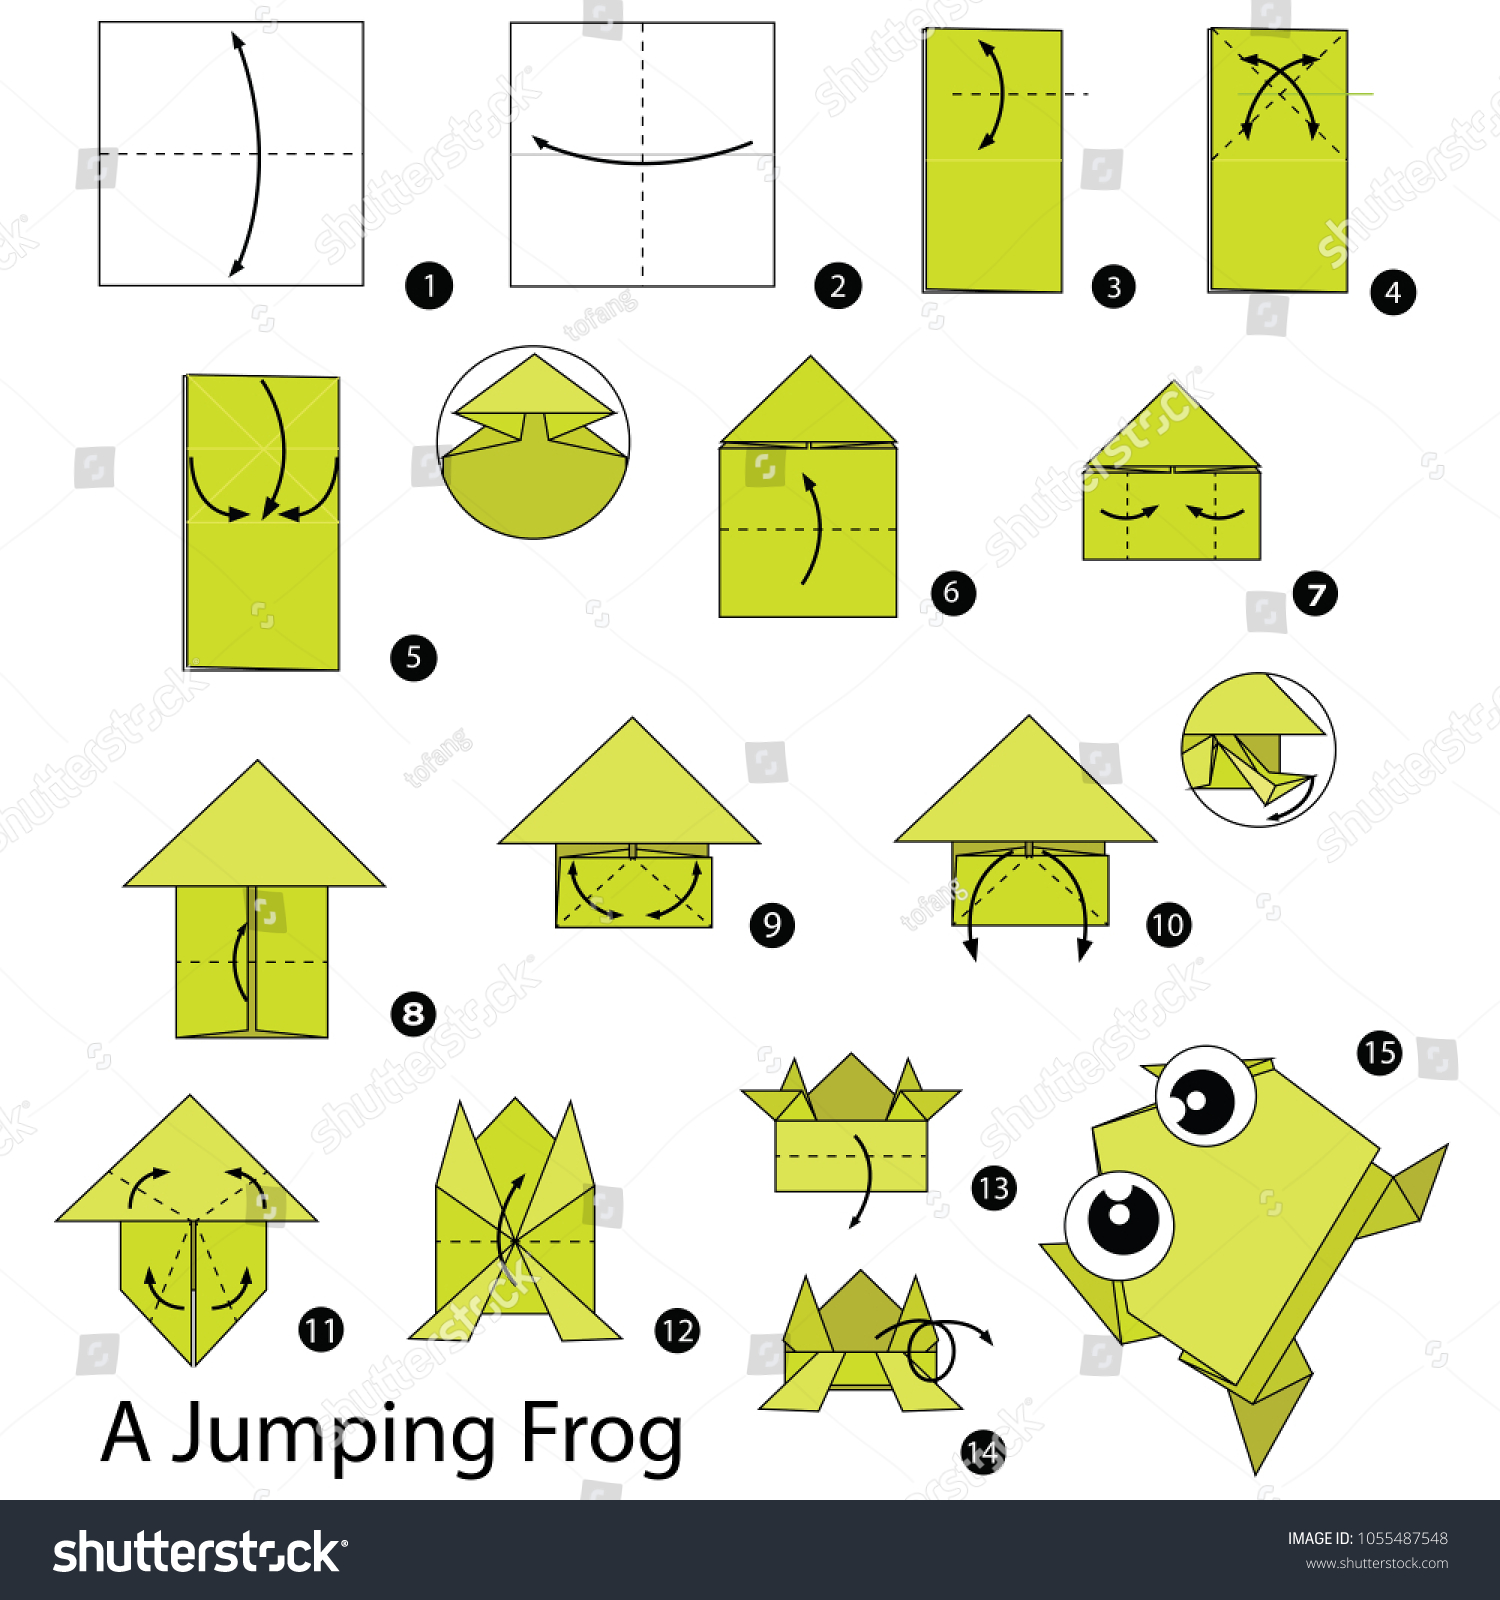 Make an origami frog that really jumps | Origami frog, Origami ... | 1600x1500